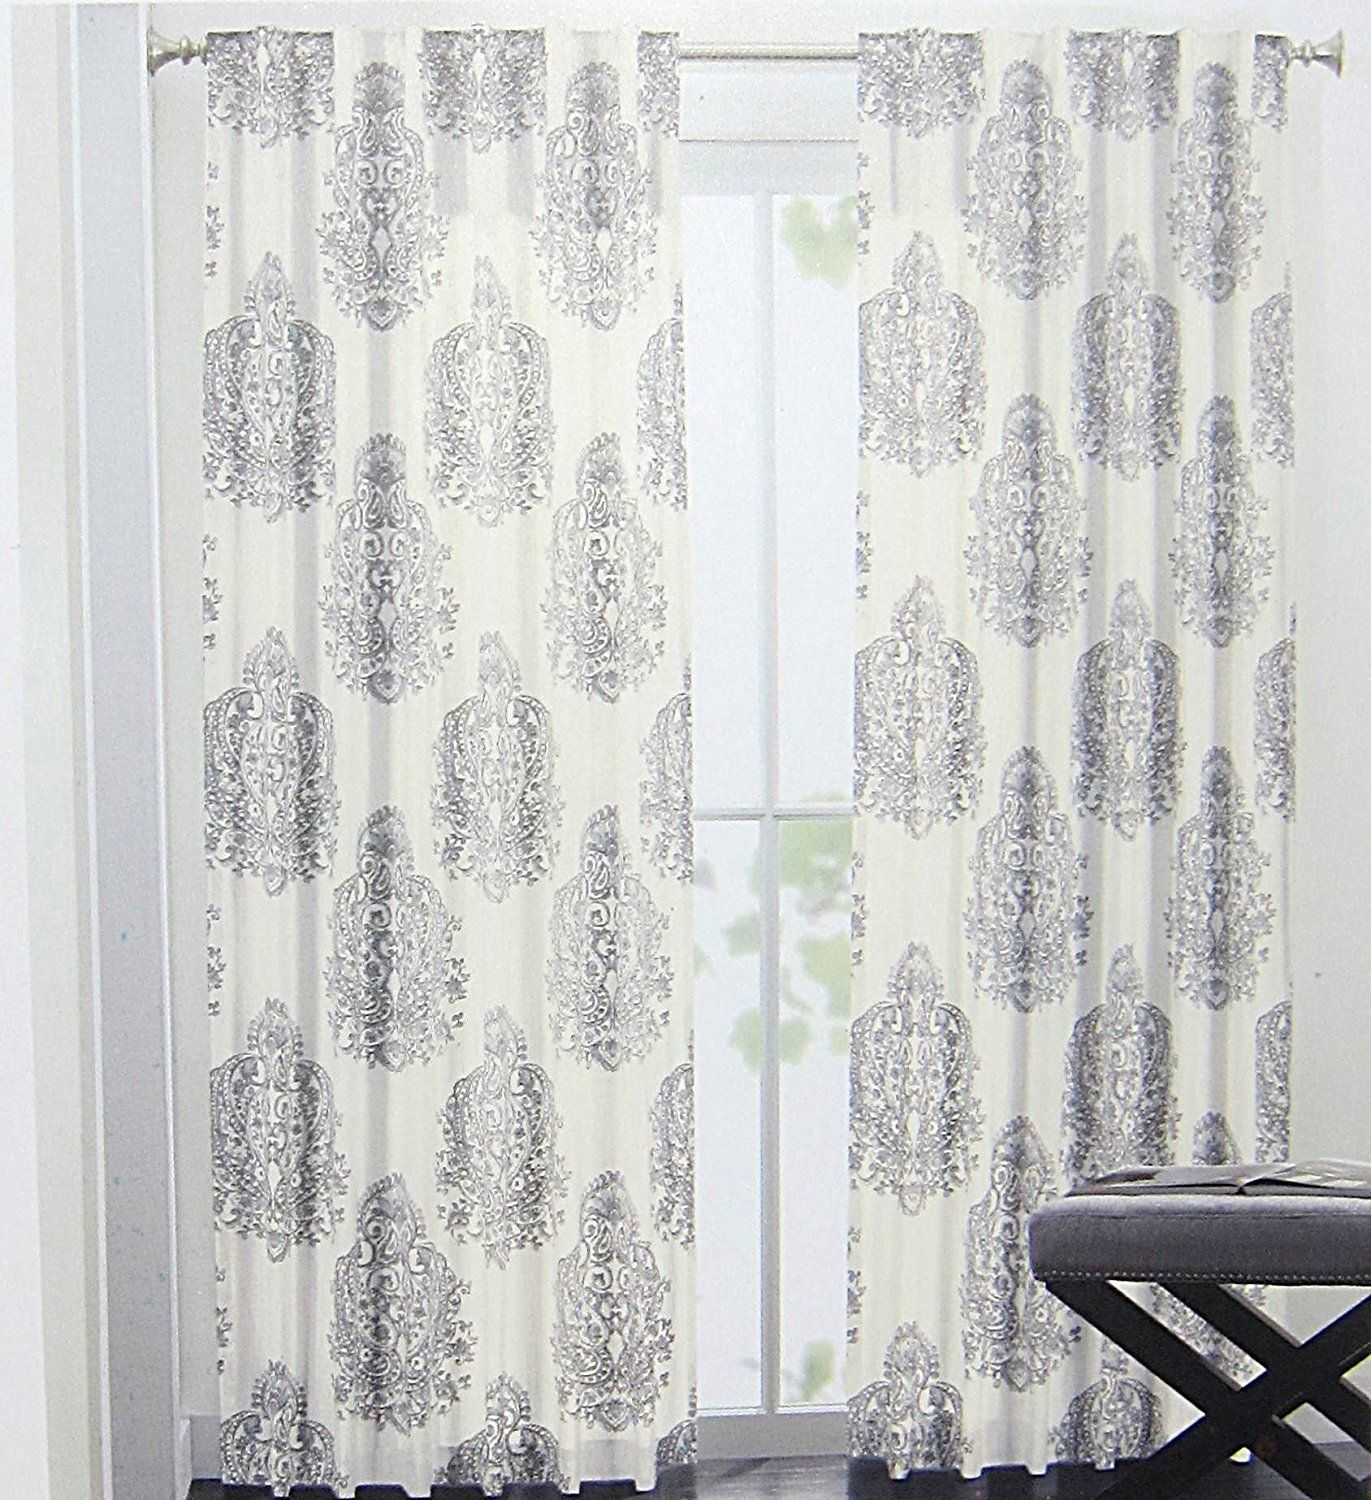 Nicole Miller Medallion Pair Of Curtains In Grey Cream Ash Gray Colors  Medallion Print China Paisley